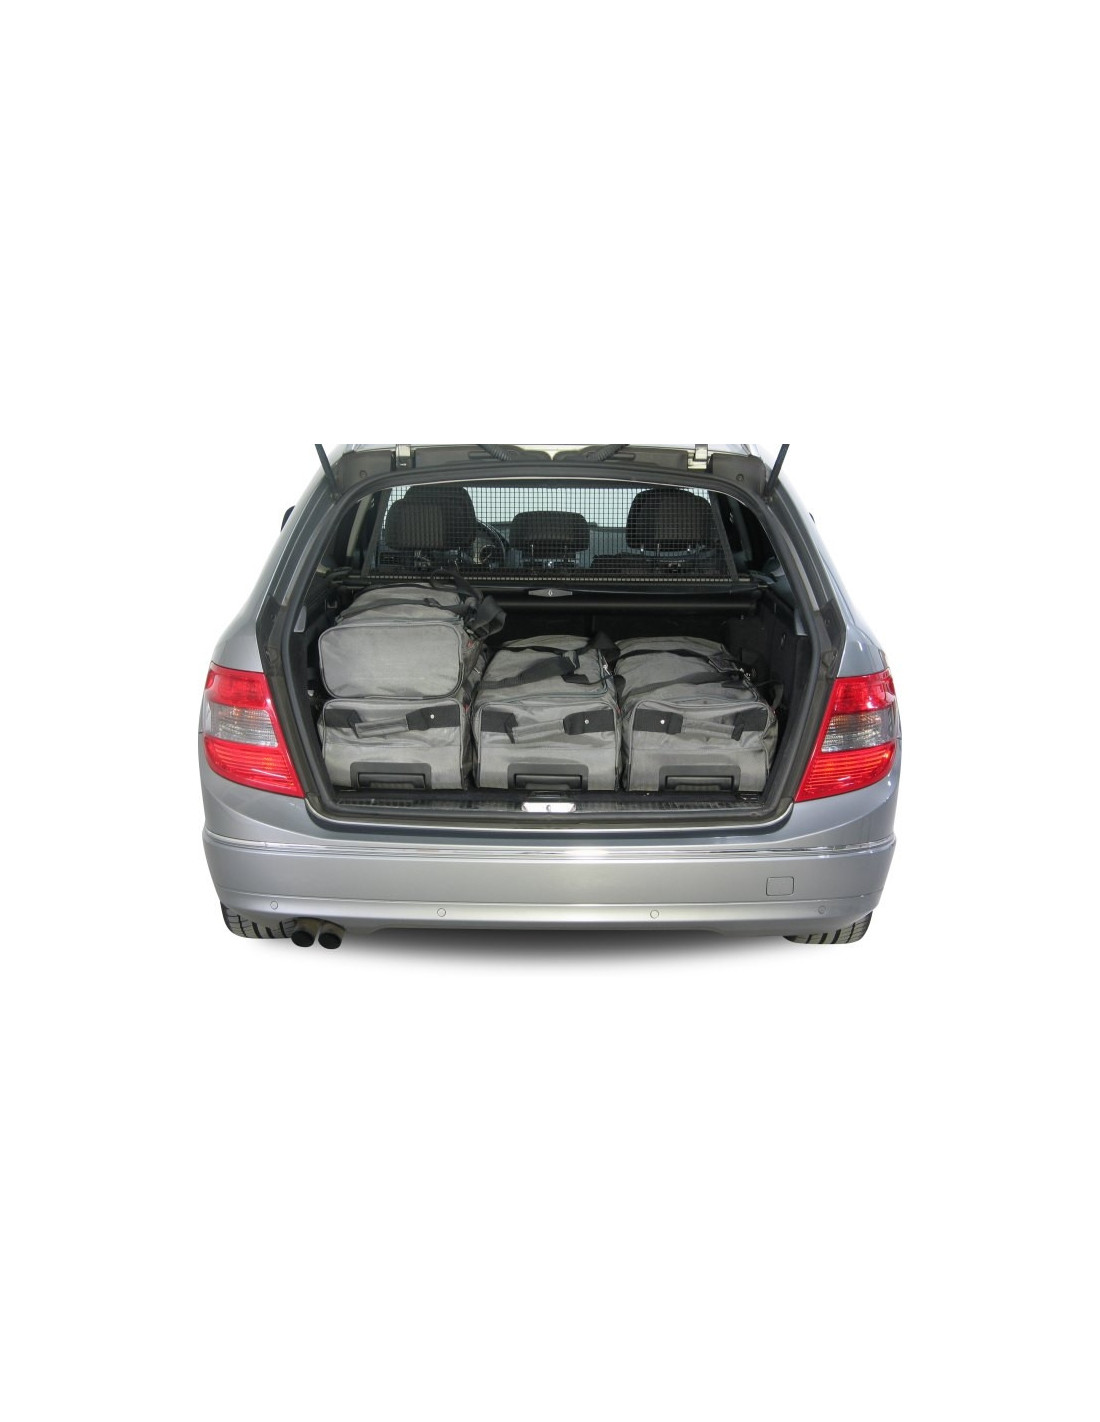 Mercedes benz c klasse estate s204 2007 2014 car bags for Mercedes benz backpack